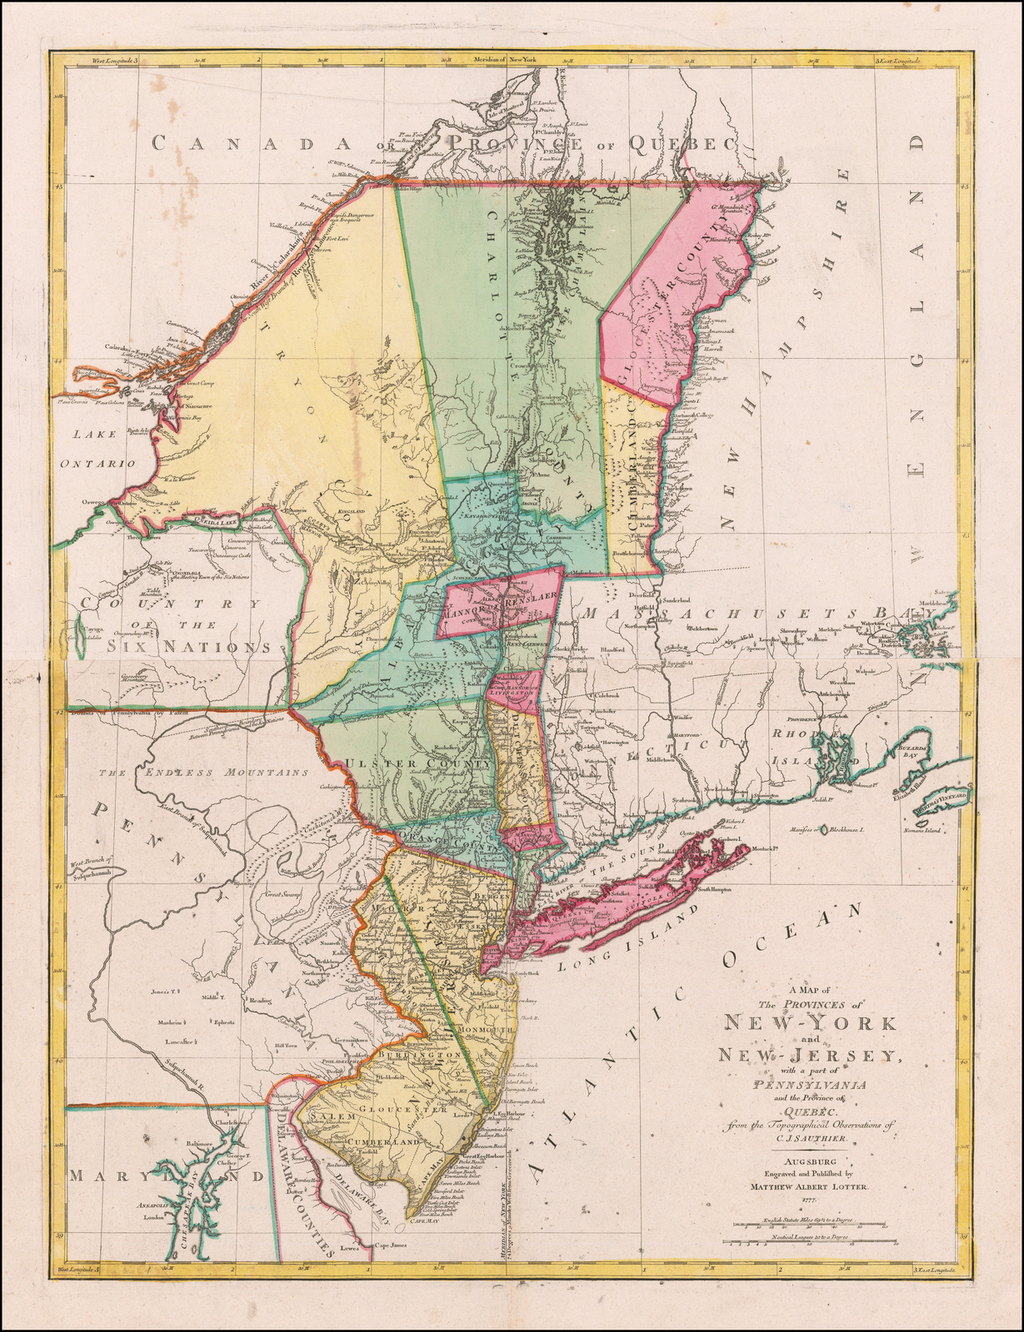 A Map of the Provinces of New-York and New-Jersey, with a part of Pennsylvania and the Province of Québec . . . 1777 By Mathais Albrecht Lotter